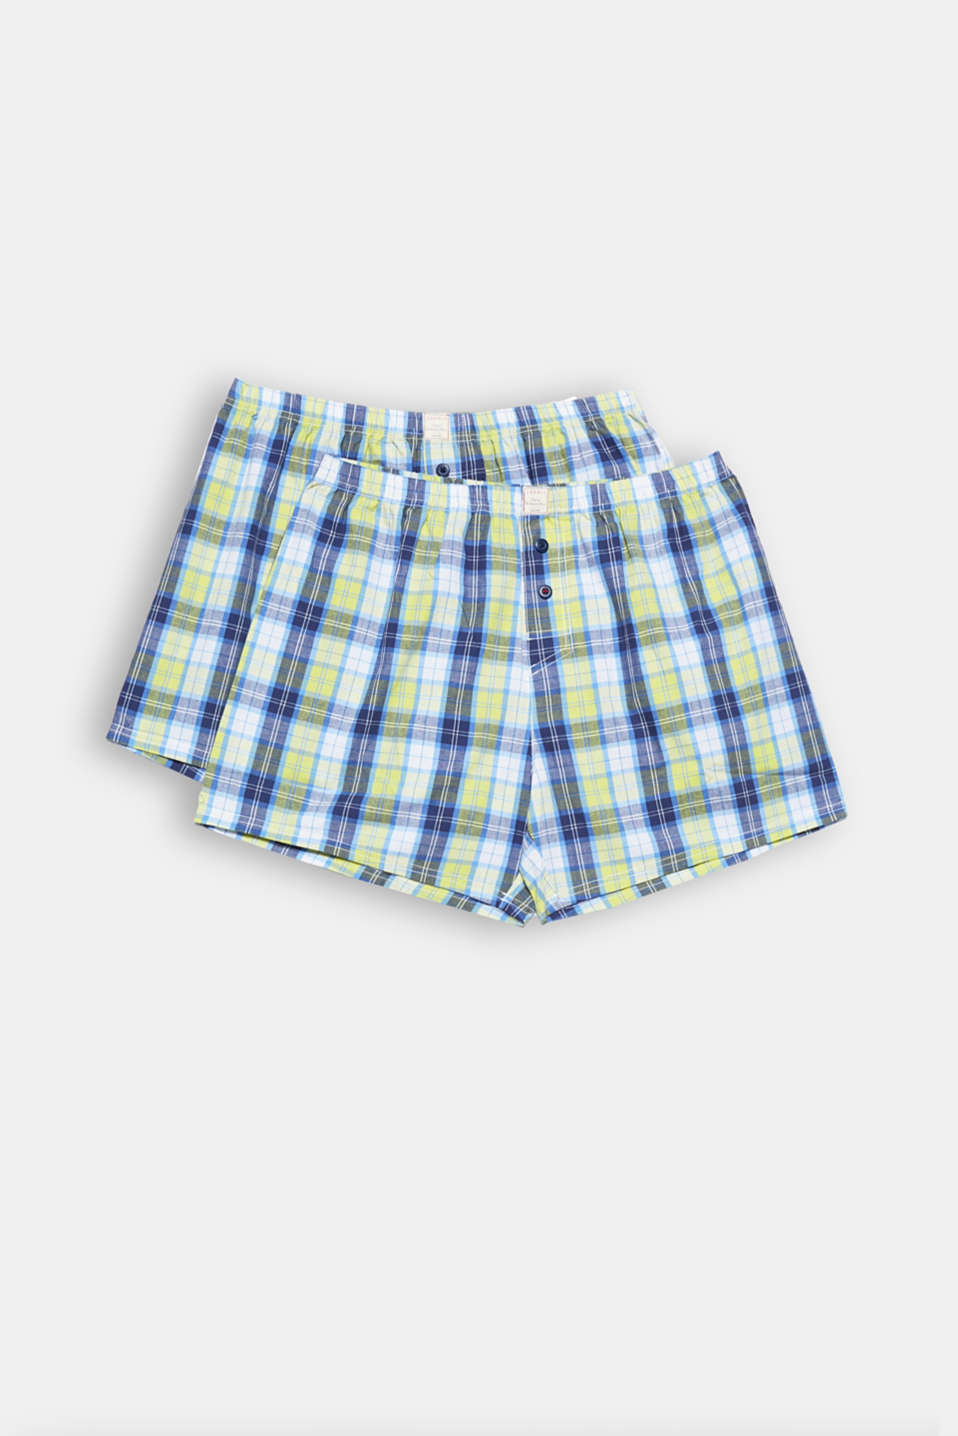 Trendy check on smooth cotton fabric - this winning combo makes these woven shorts truly lustworthy! So, perfect in a double pack!